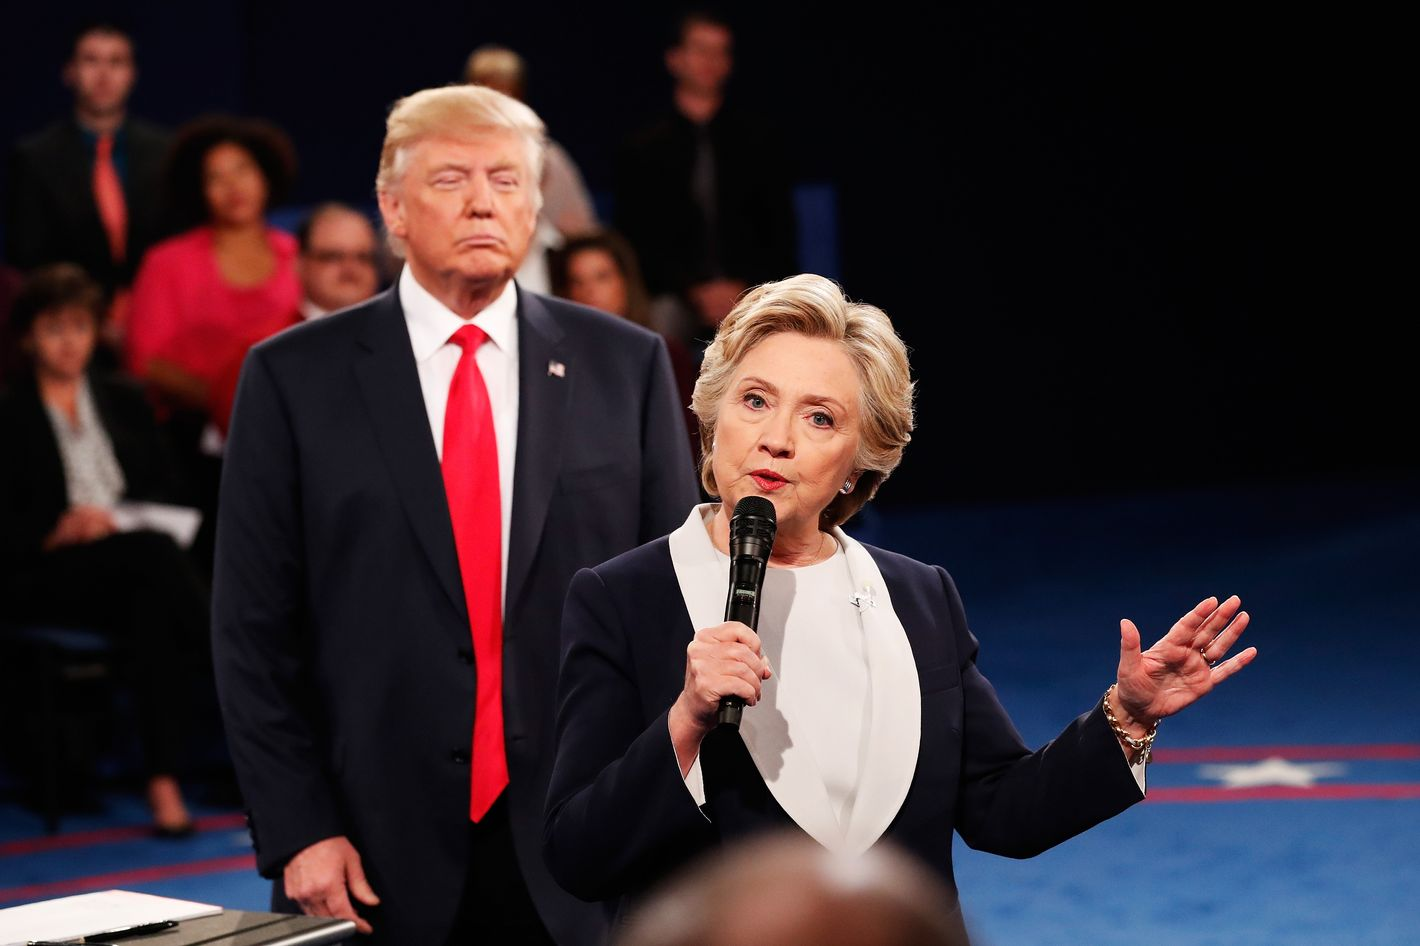 17M-plus tweets sent about the debate, most ever